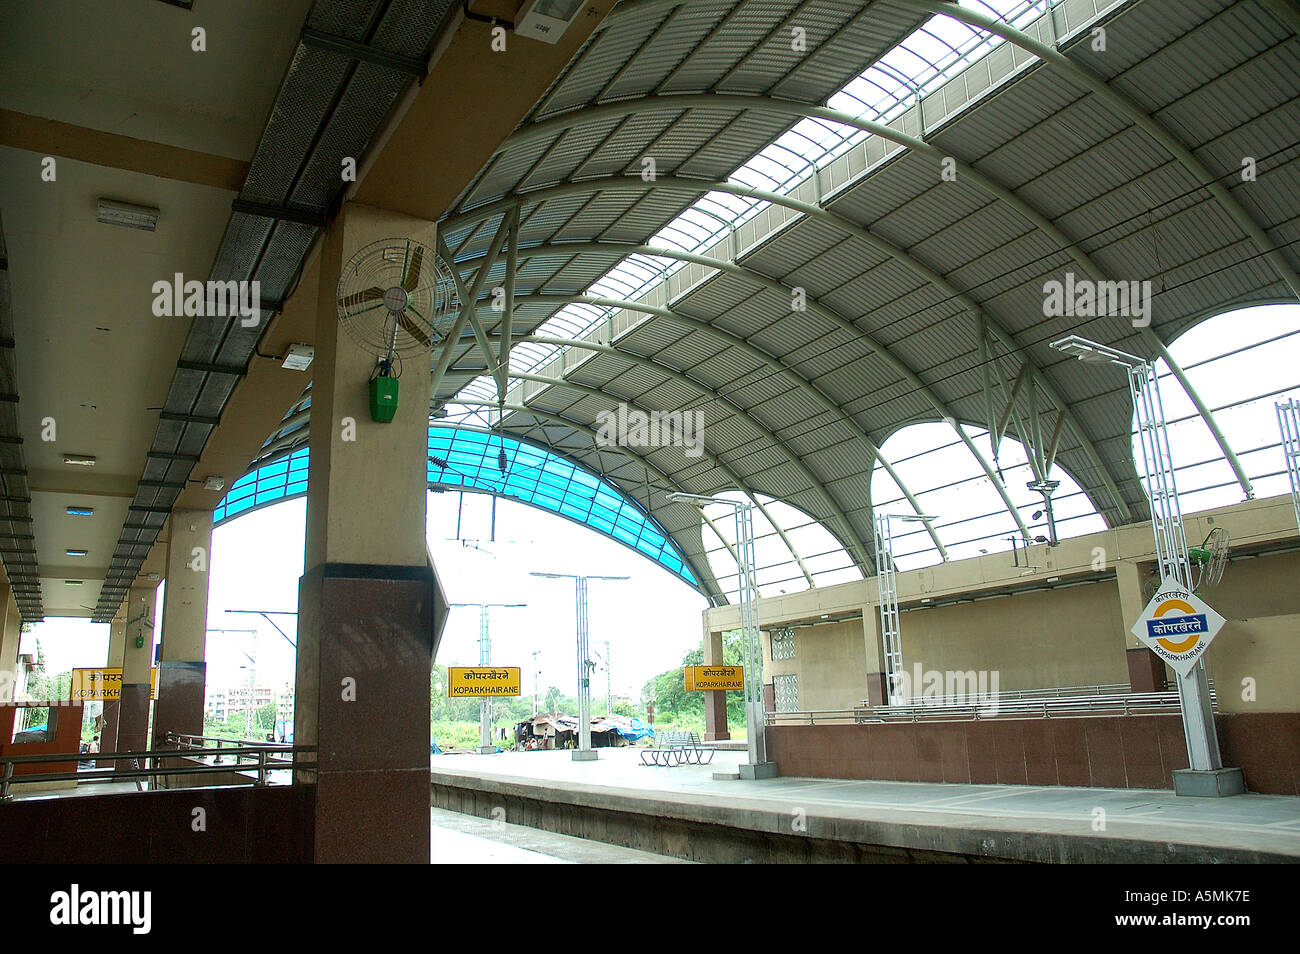 RAJ98892 Modern new Koper khairne Railway Station Navi Mumbai Vashi Bombay Maharashtra India Stock Photo